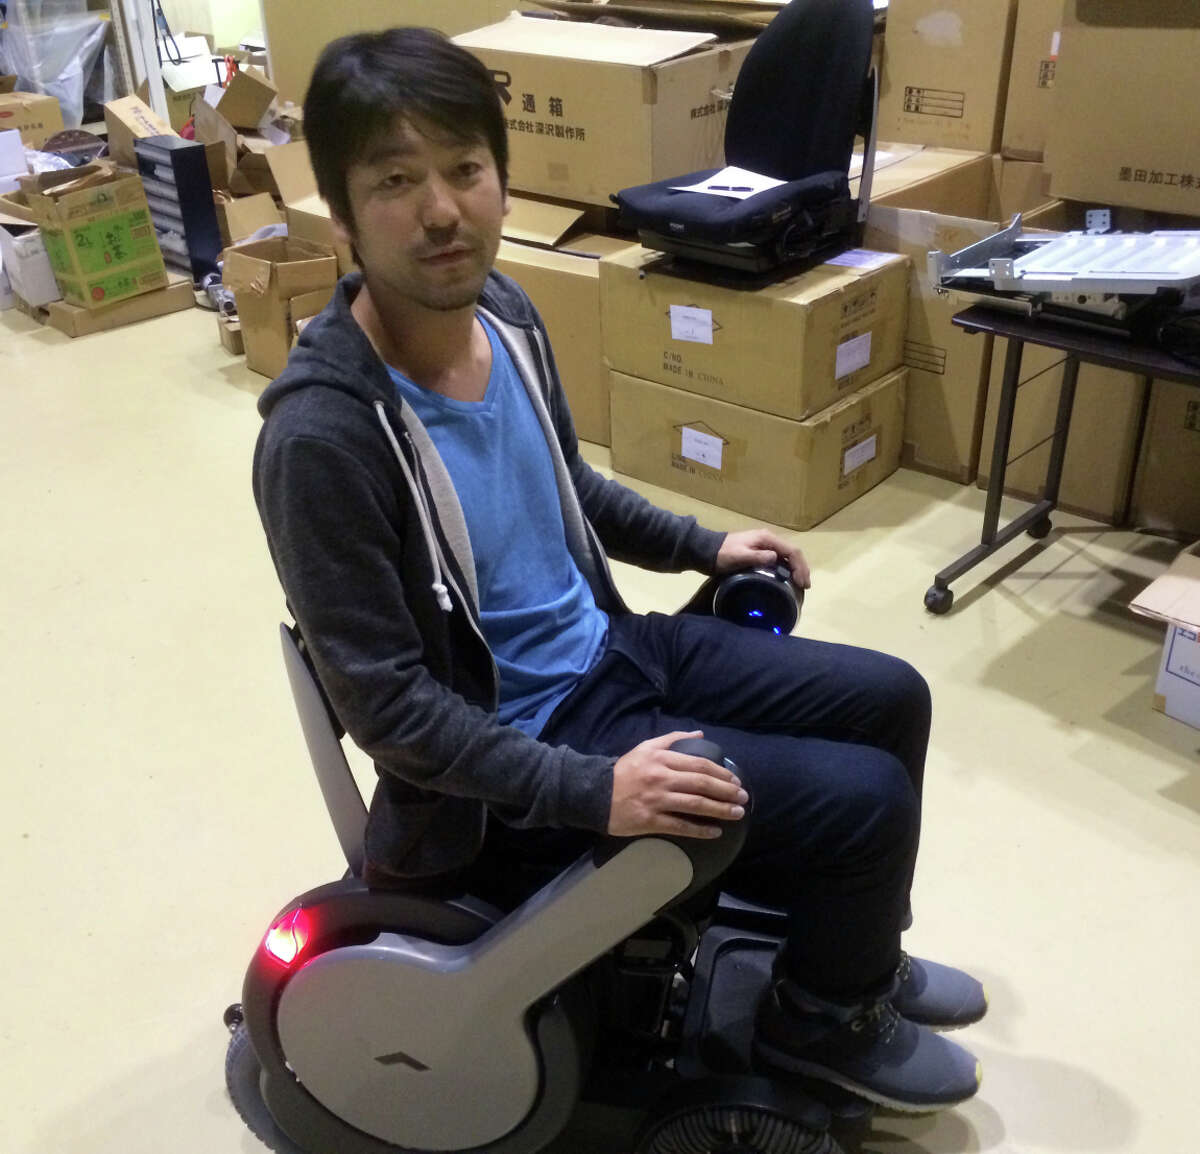 Satoshi Sugie, CEO of Whill, shows off his startup's electric